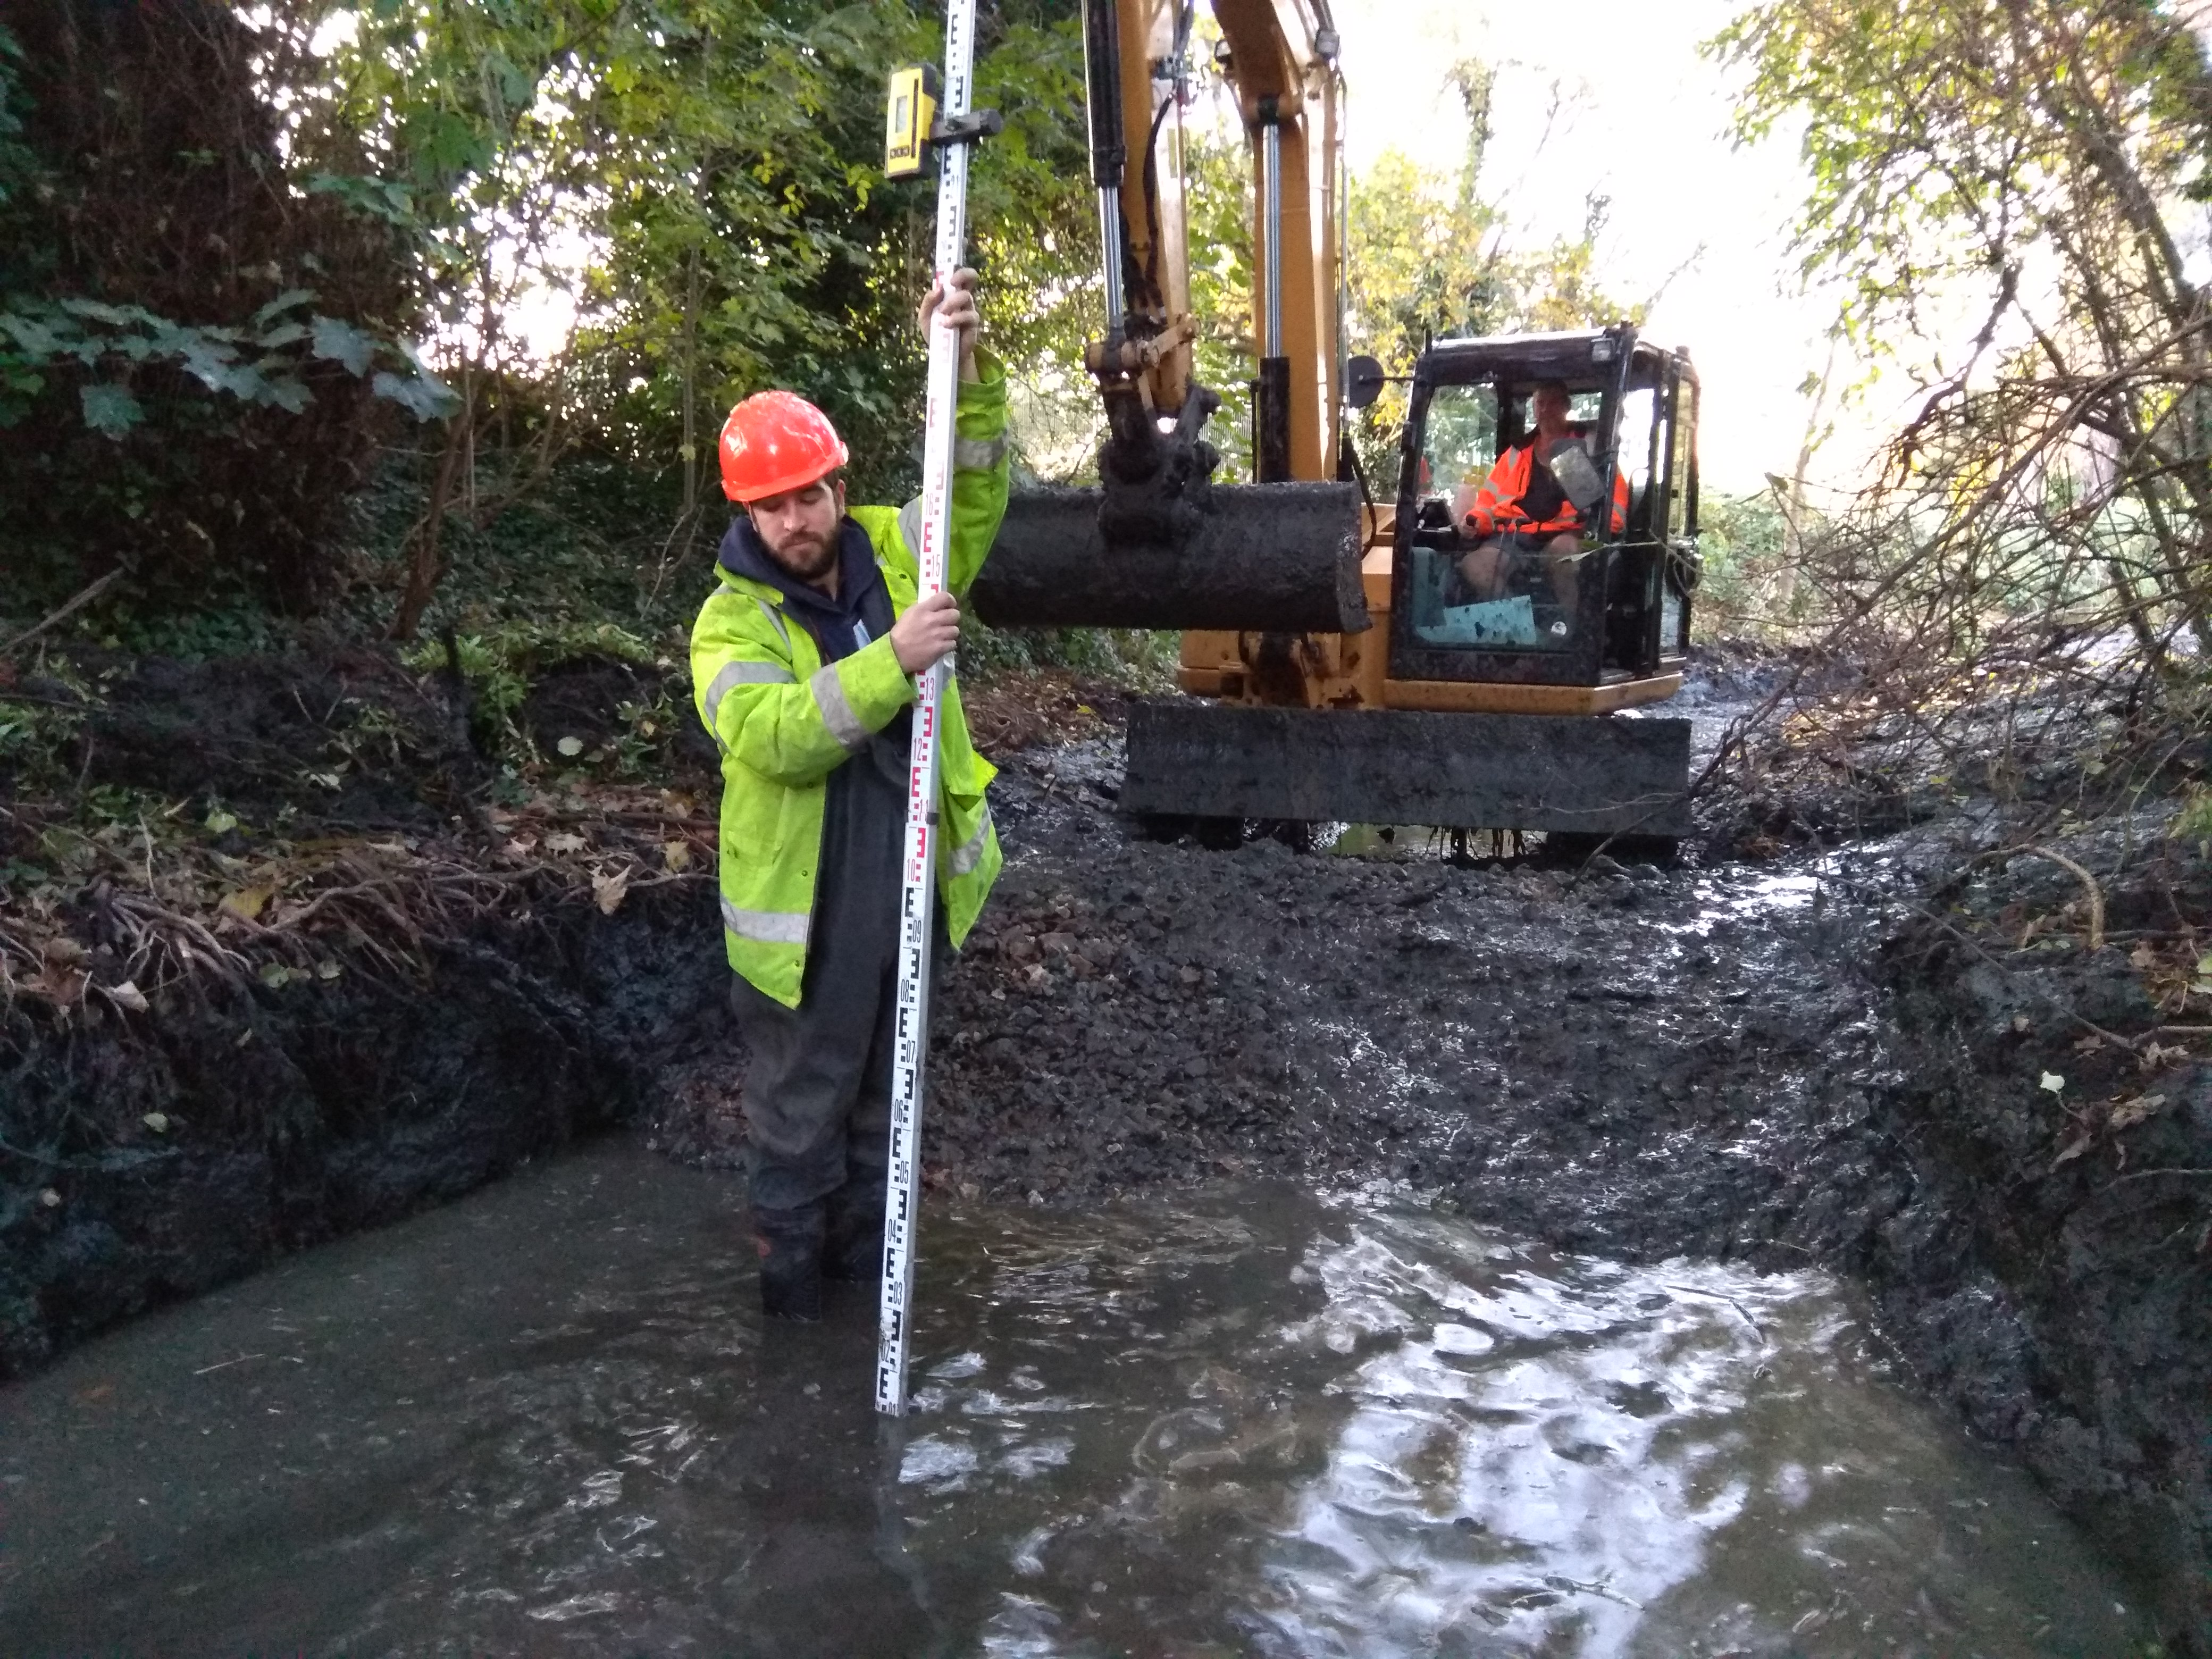 Miguel using the laser level to instruct Neville how deep to regrade the river bed